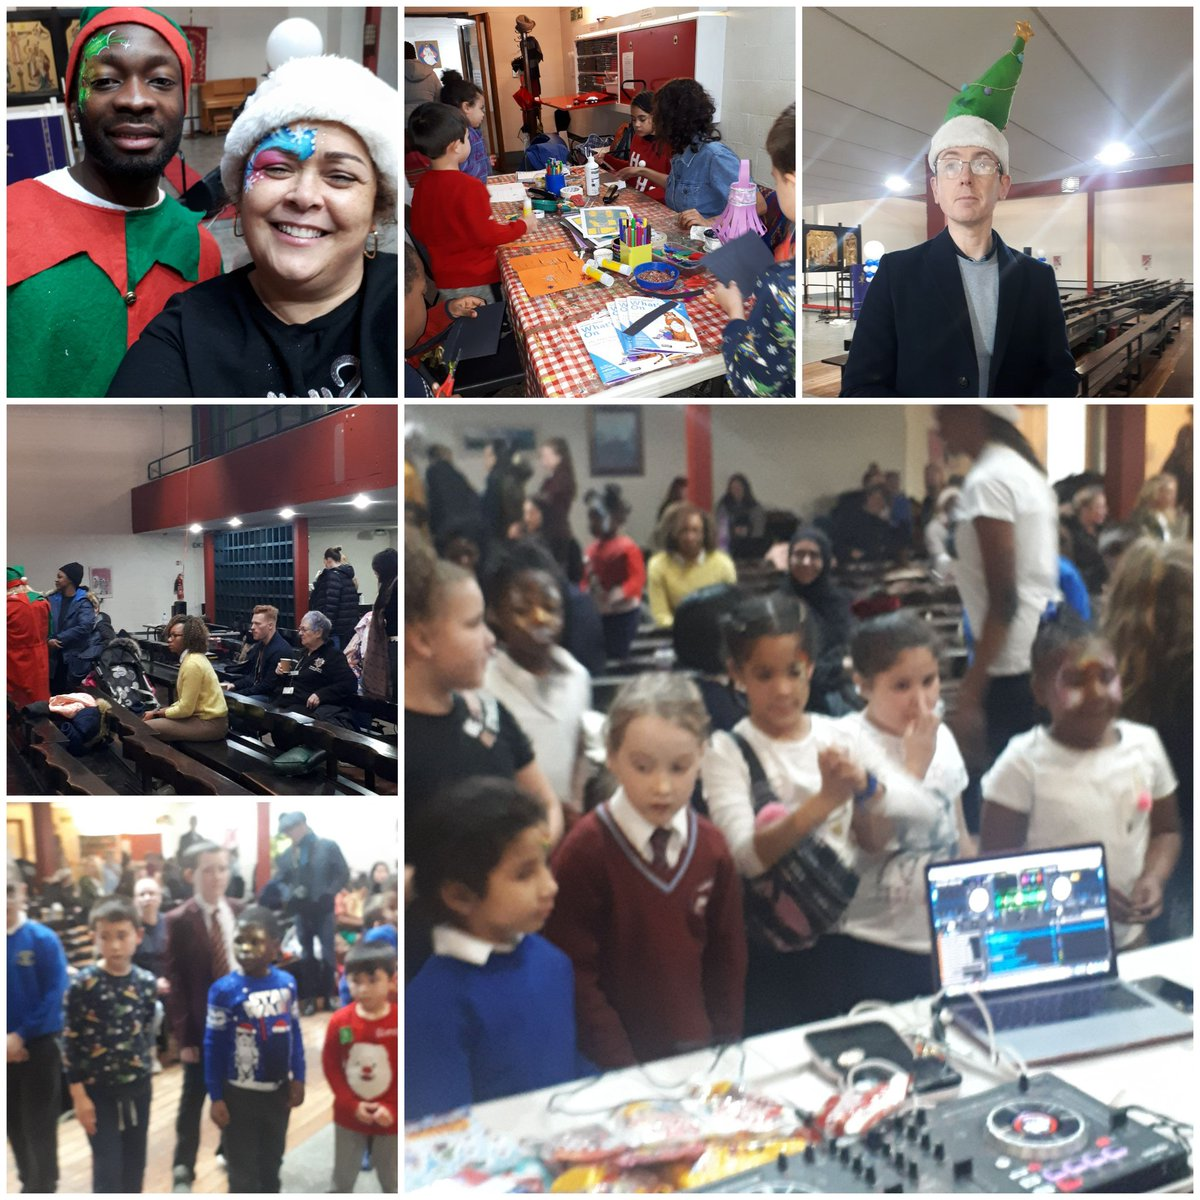 What a brilliant event in hulme park & ascension church. Hundreds of children meeting father & mother christmas @kemoywalker @GMPMossAndHulme @MCCHulme @RahmanCllr @AnnetteWright @CllrNigel @AscensionHulme @LeeGlover1975 @HulmeOf thank you to all the helpers well done